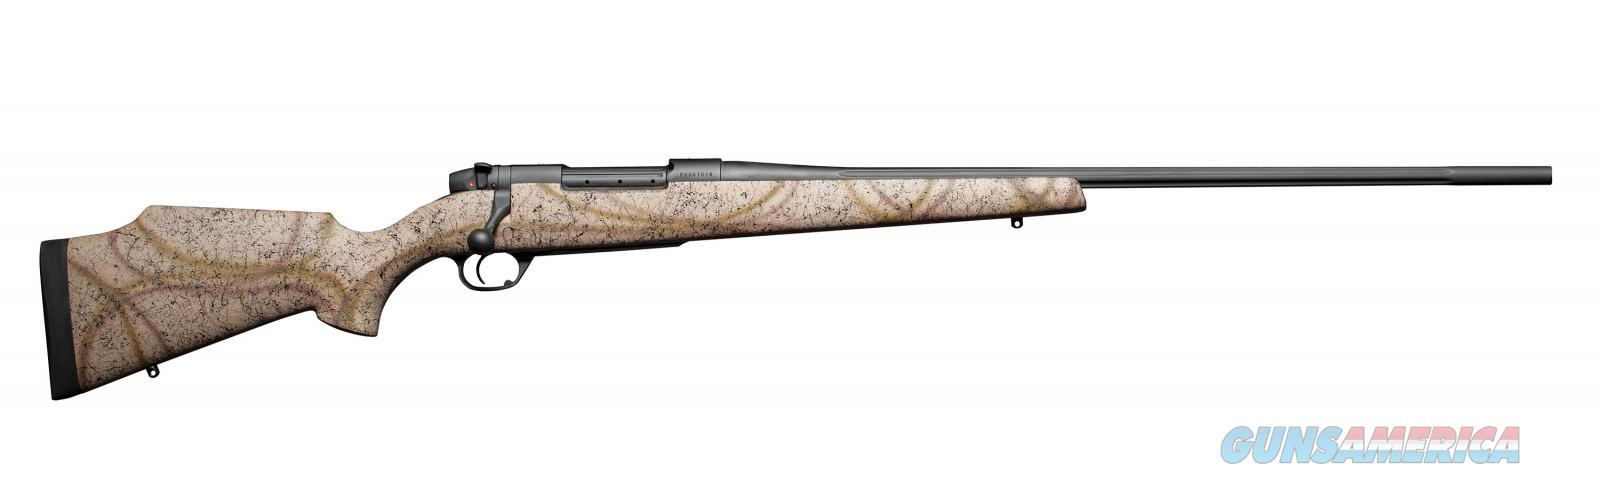 "Weatherby Mark V Outfitter RC .257 Wby 26"" MOFM257WR6O  Guns > Rifles > Weatherby Rifles > Sporting"